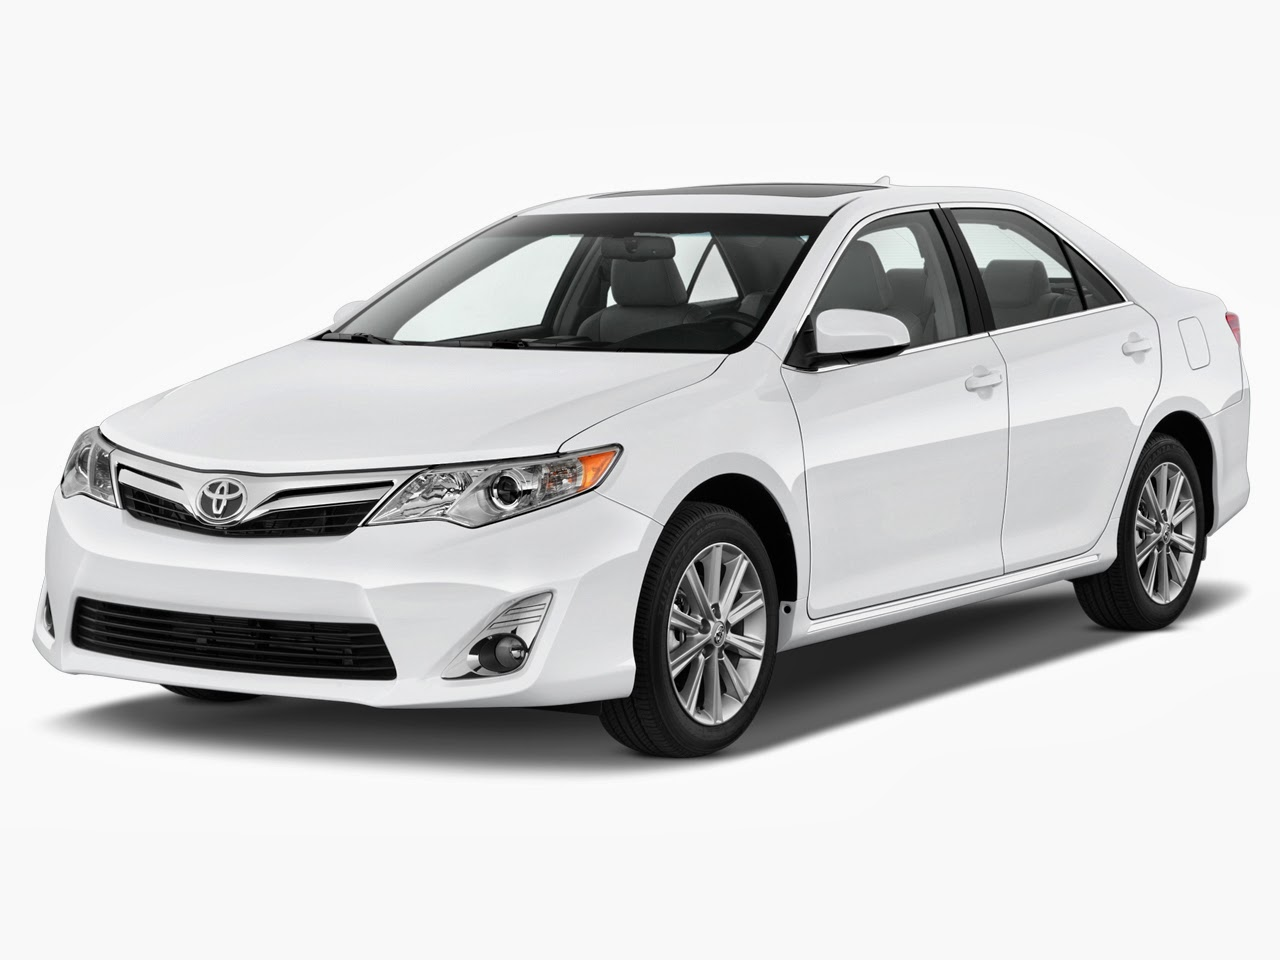 toyota camry 2014 specs and fuel economy. Black Bedroom Furniture Sets. Home Design Ideas